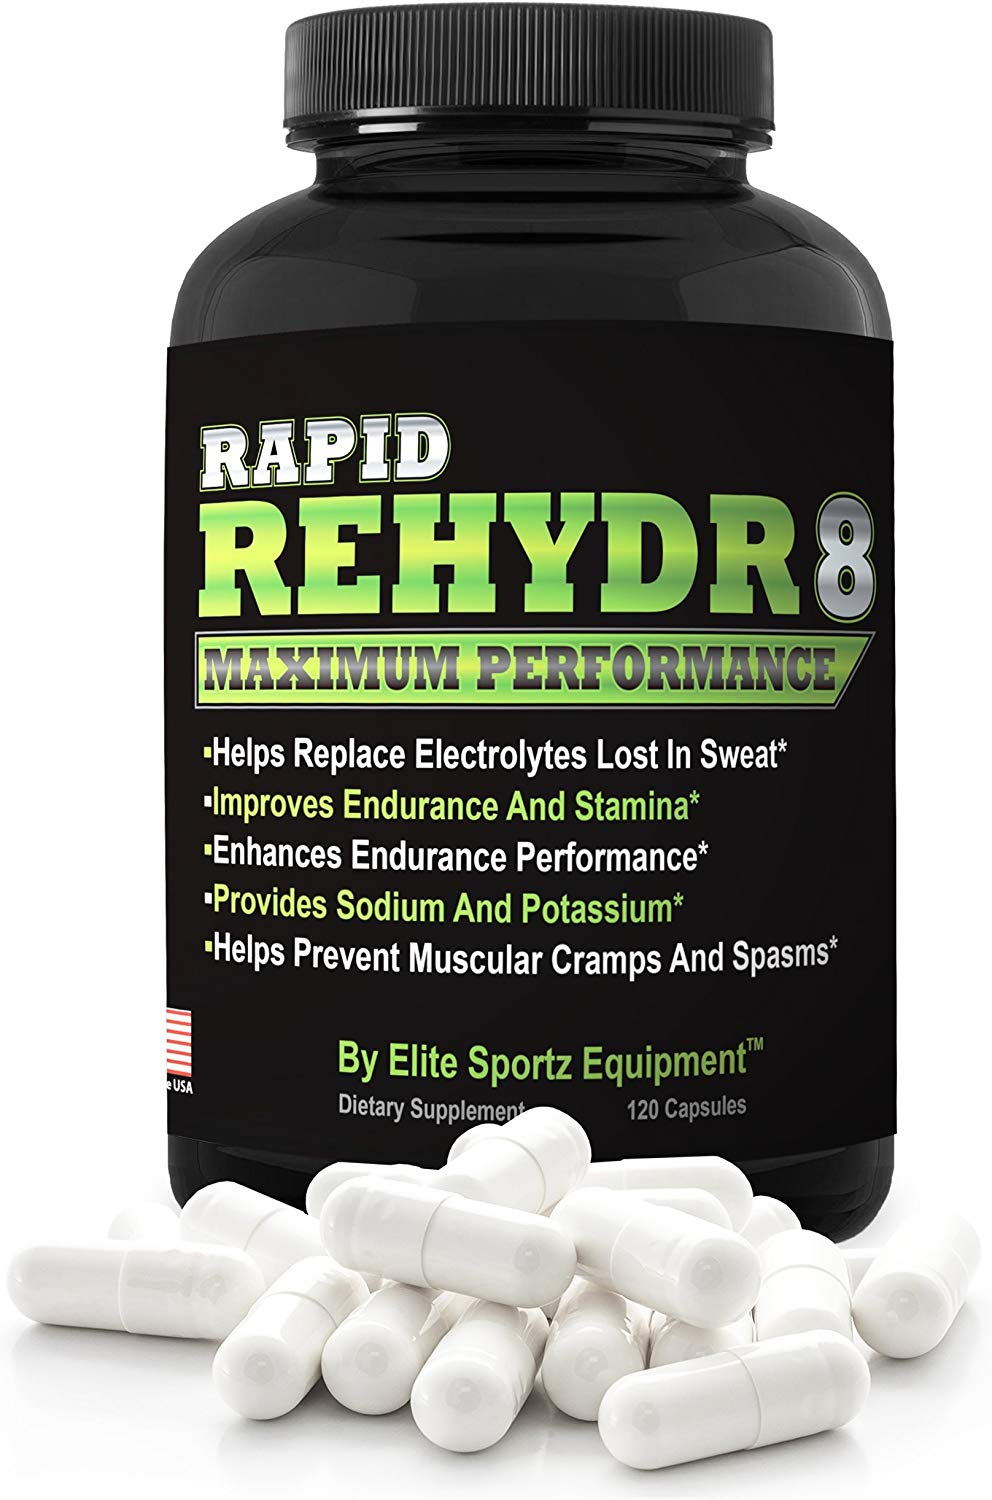 Rapid Rehydr8